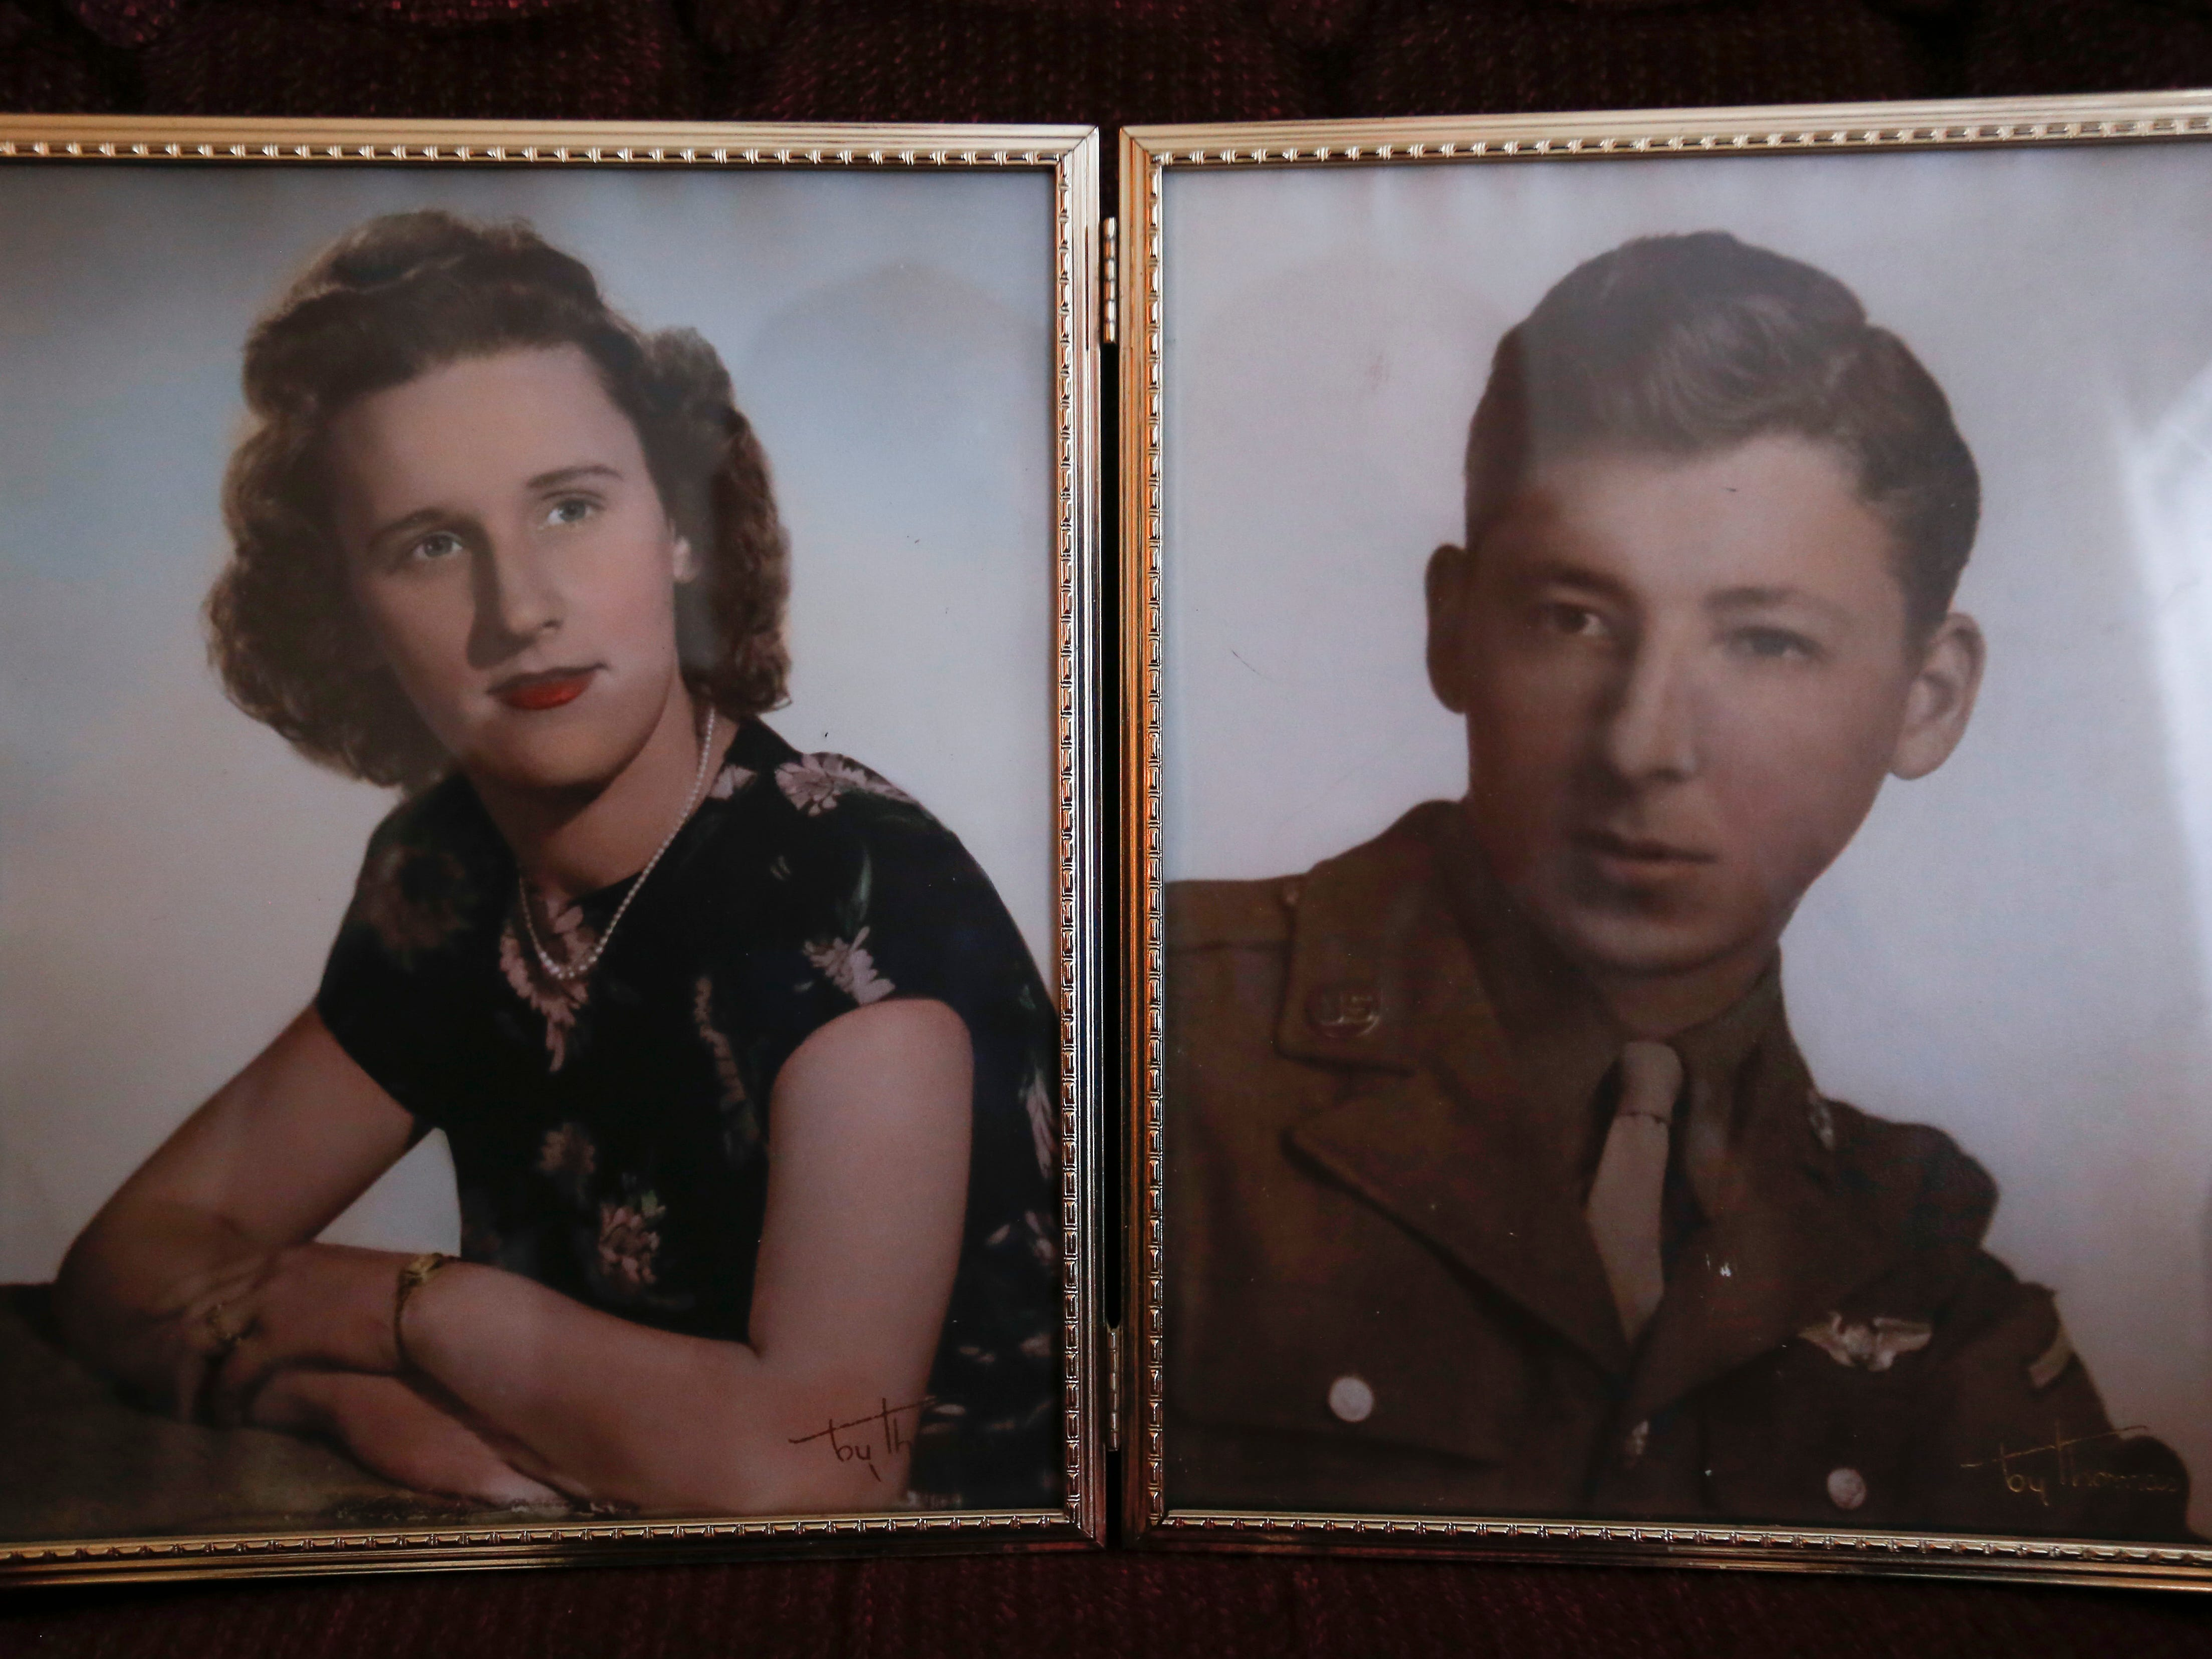 Photos of Stephen Floyd when he was 23 and his wife Kathleen from before he deployed for combat during WWII.